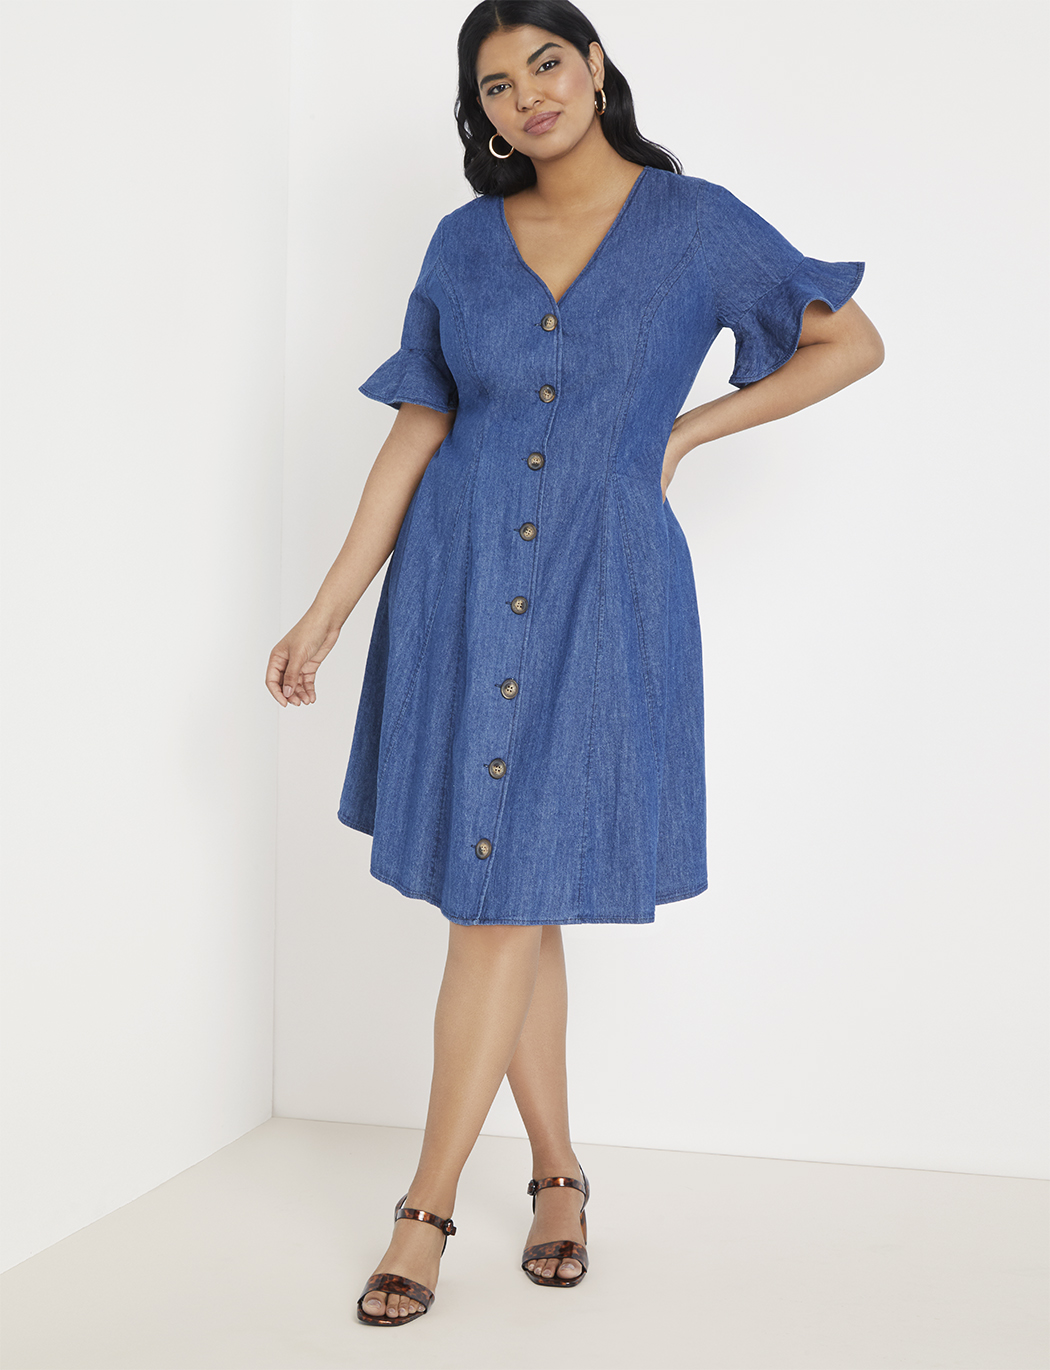 Button Front Chambray Dress | Women\'s Plus Size Dresses | ELOQUII